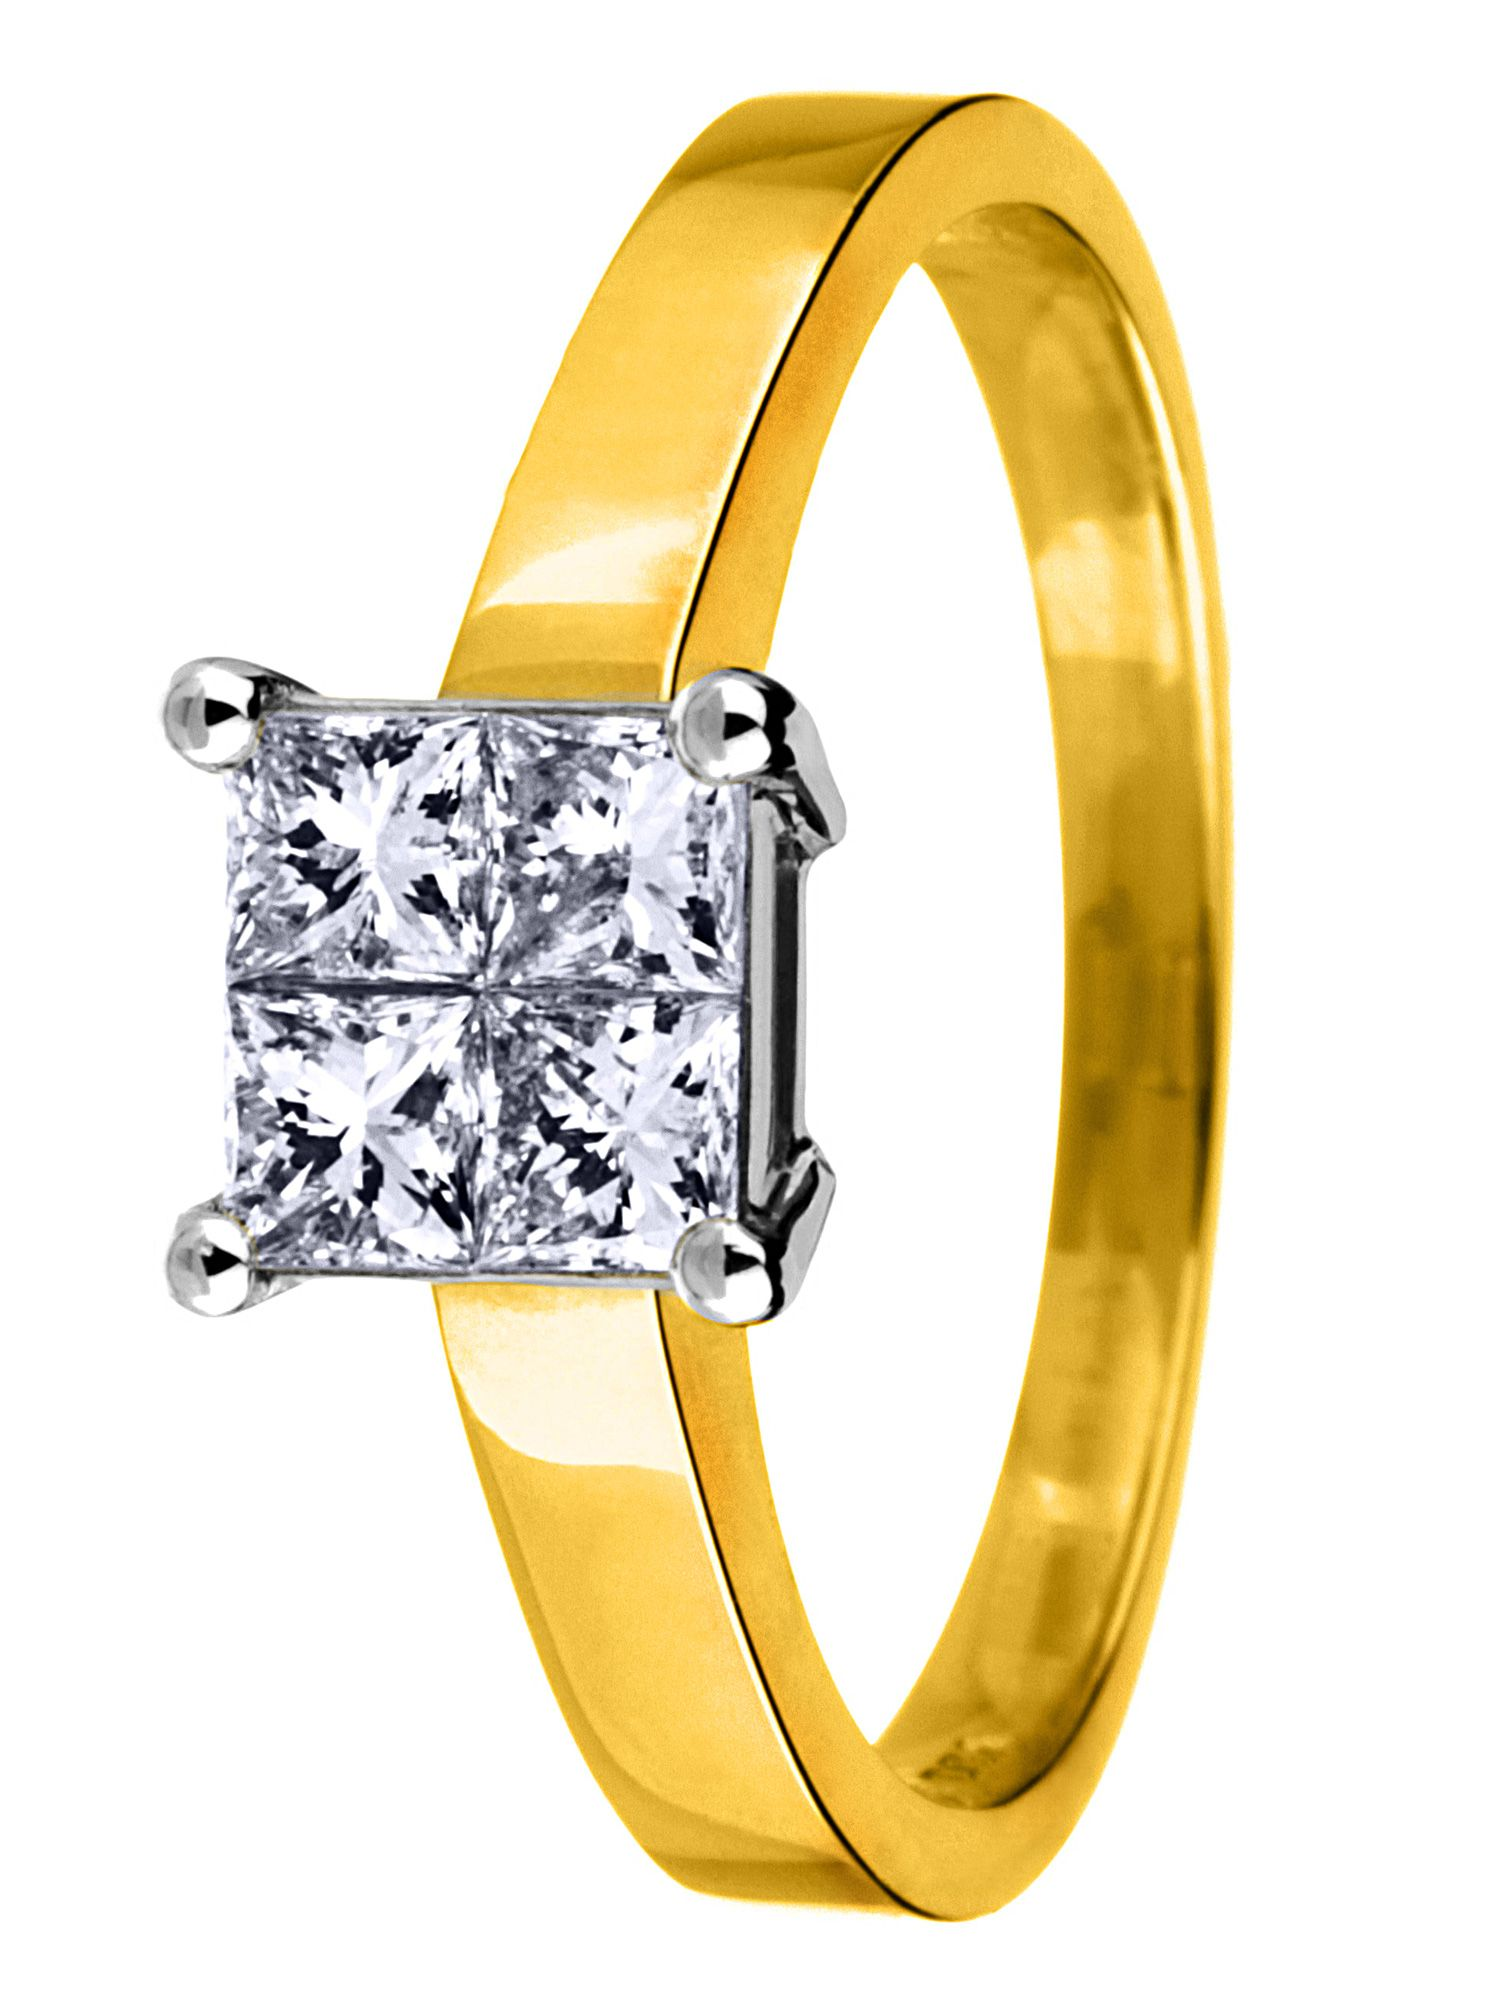 18ct gold 0.25ct solitaire diamond ring